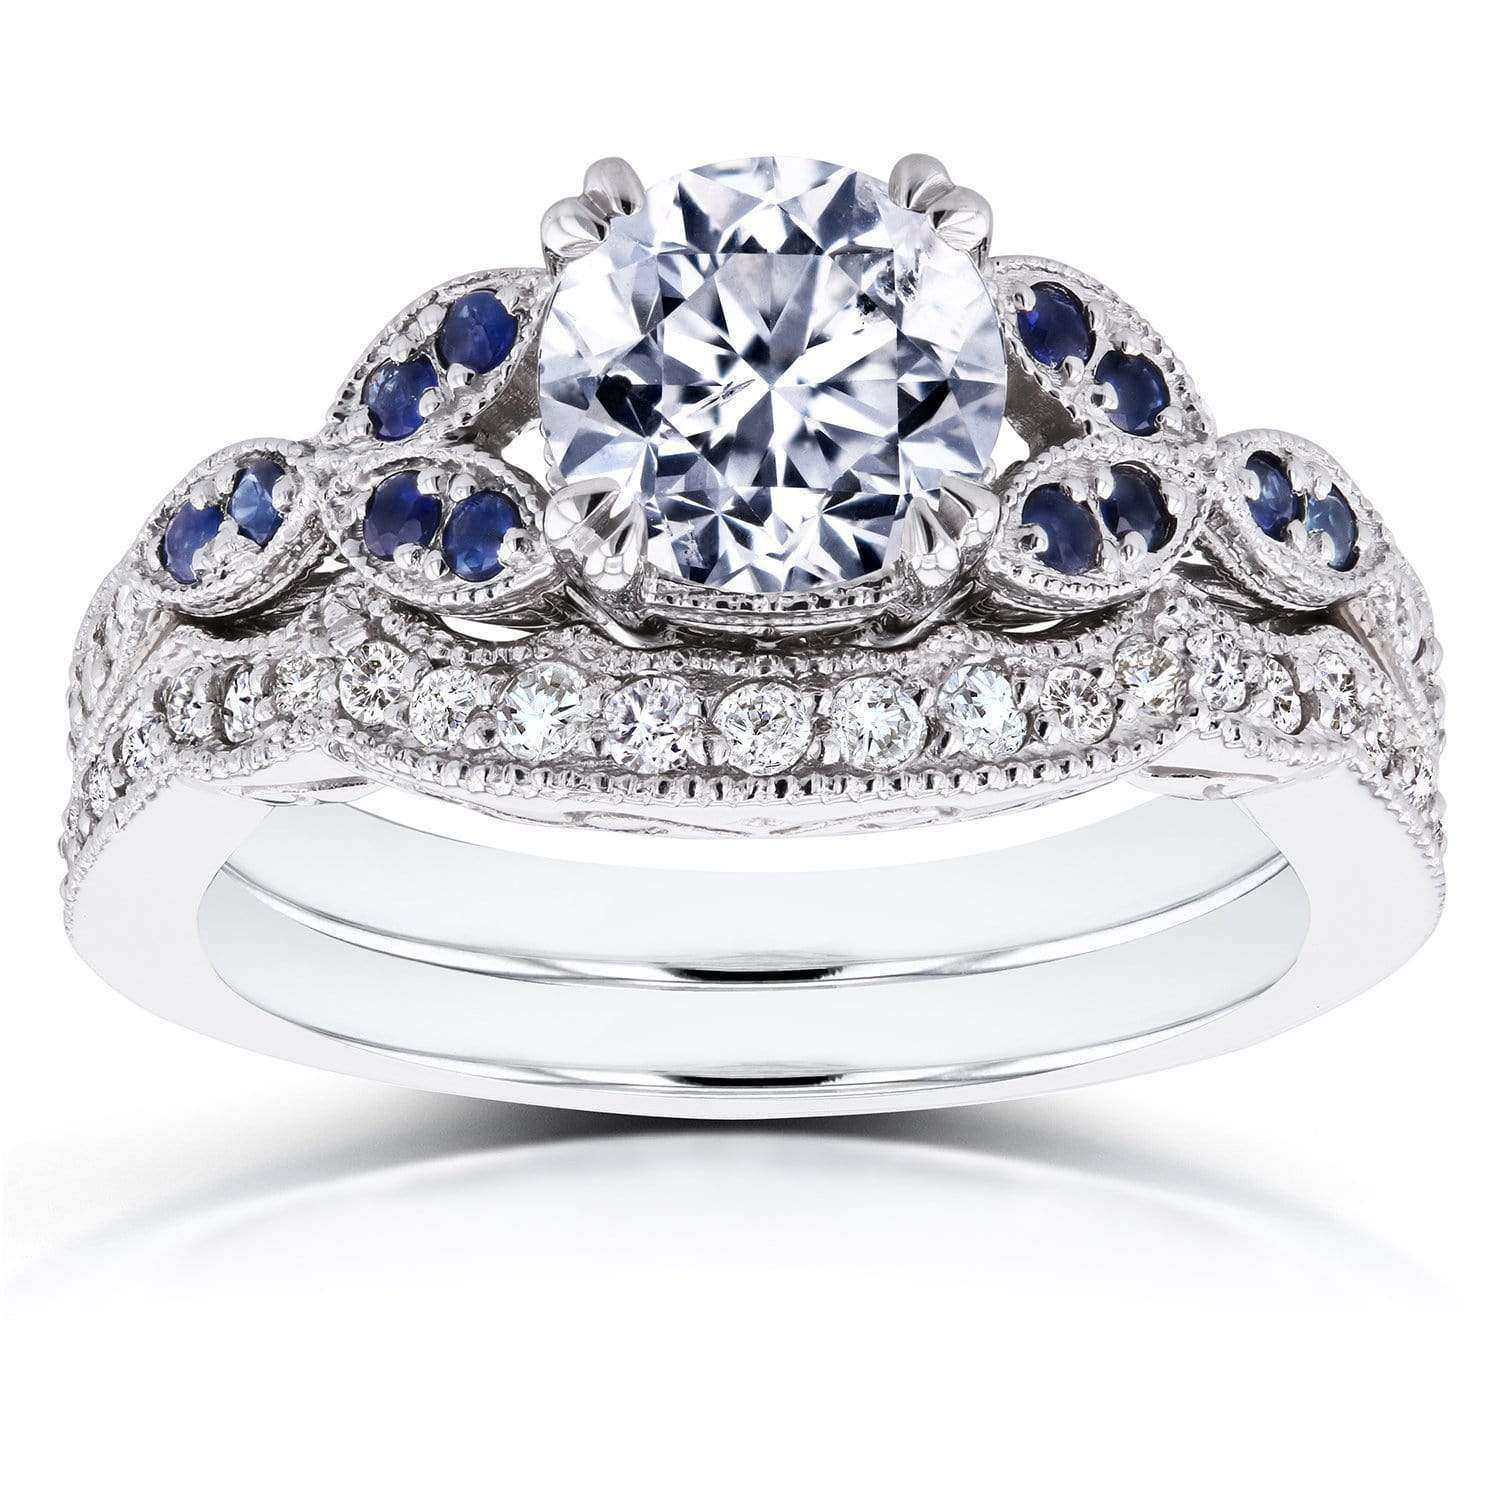 Discounts Round Diamond and Blue Sapphire Bridal Set 1 2/5 CTW in 14k White Gold - 8